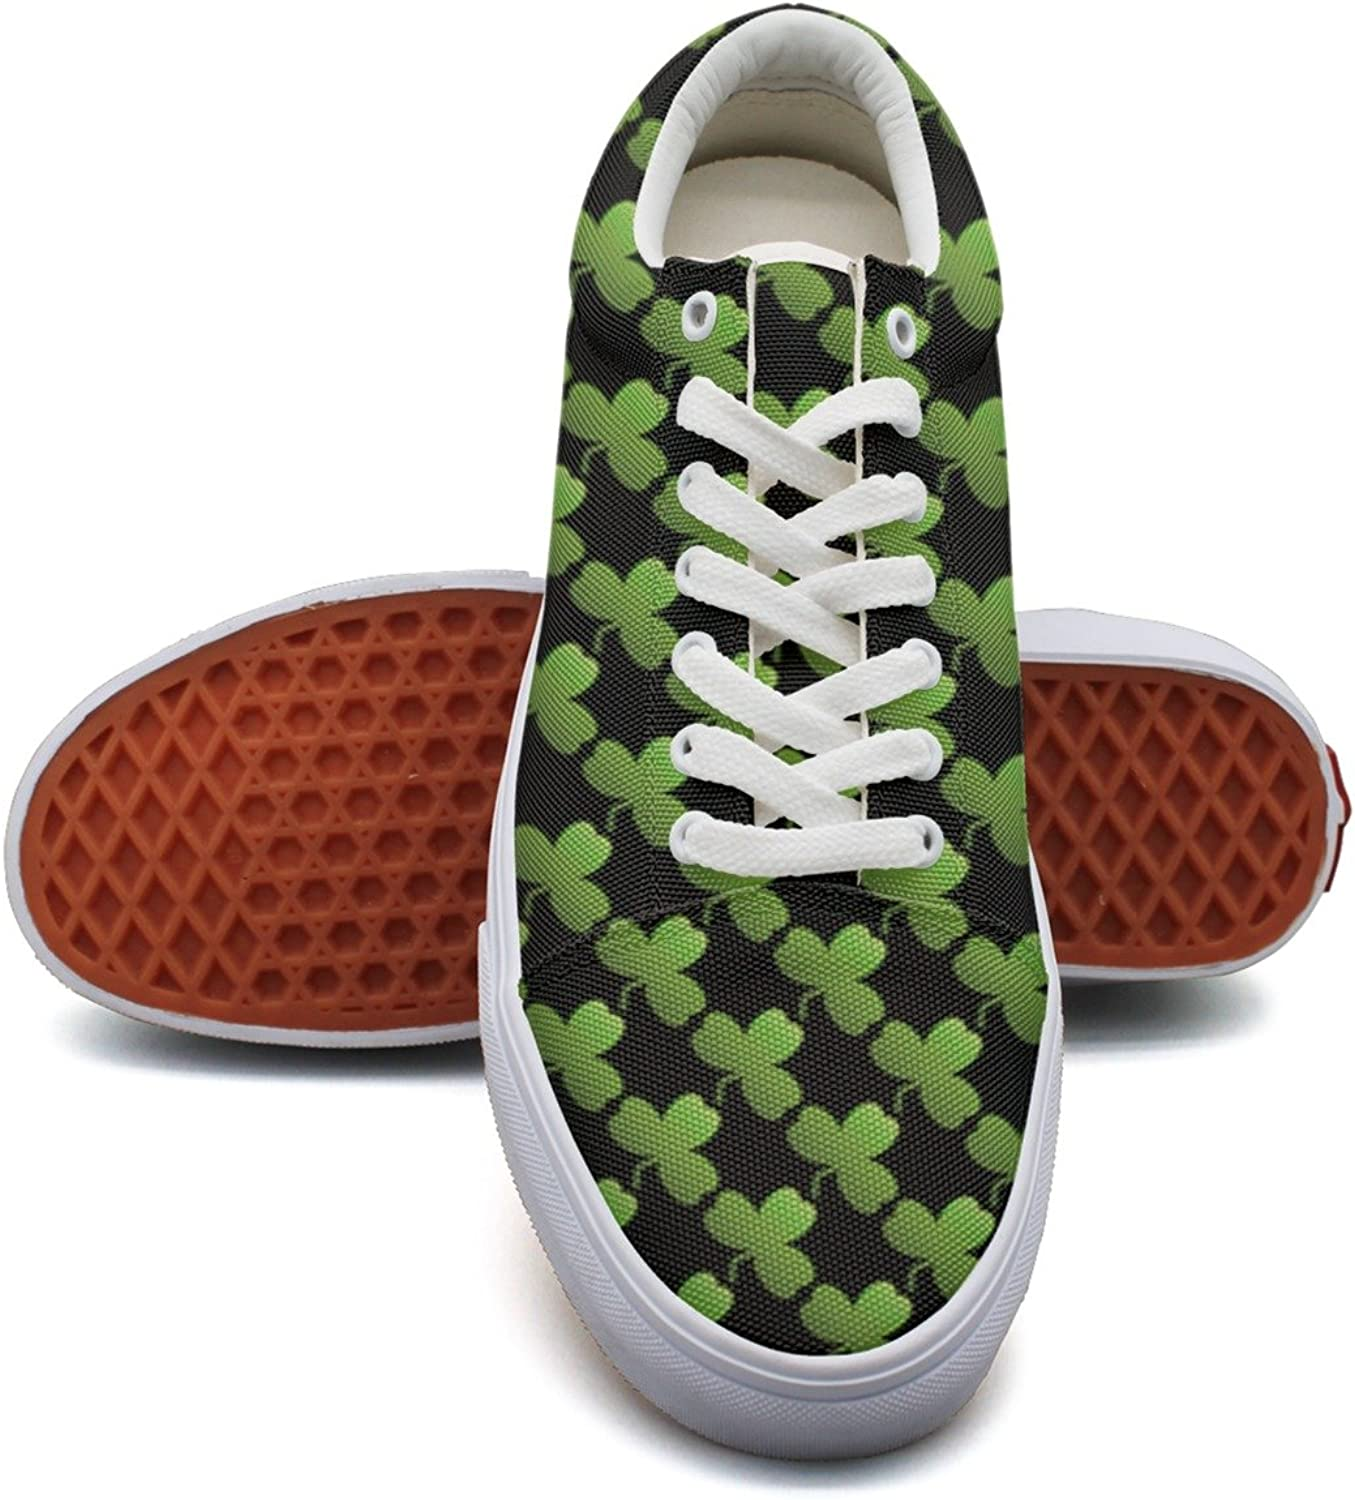 St Patrick's Day Irish Shamrocks Fashion Canvas Sneaker shoes For Womns 3D Printed Low Top Walking shoes